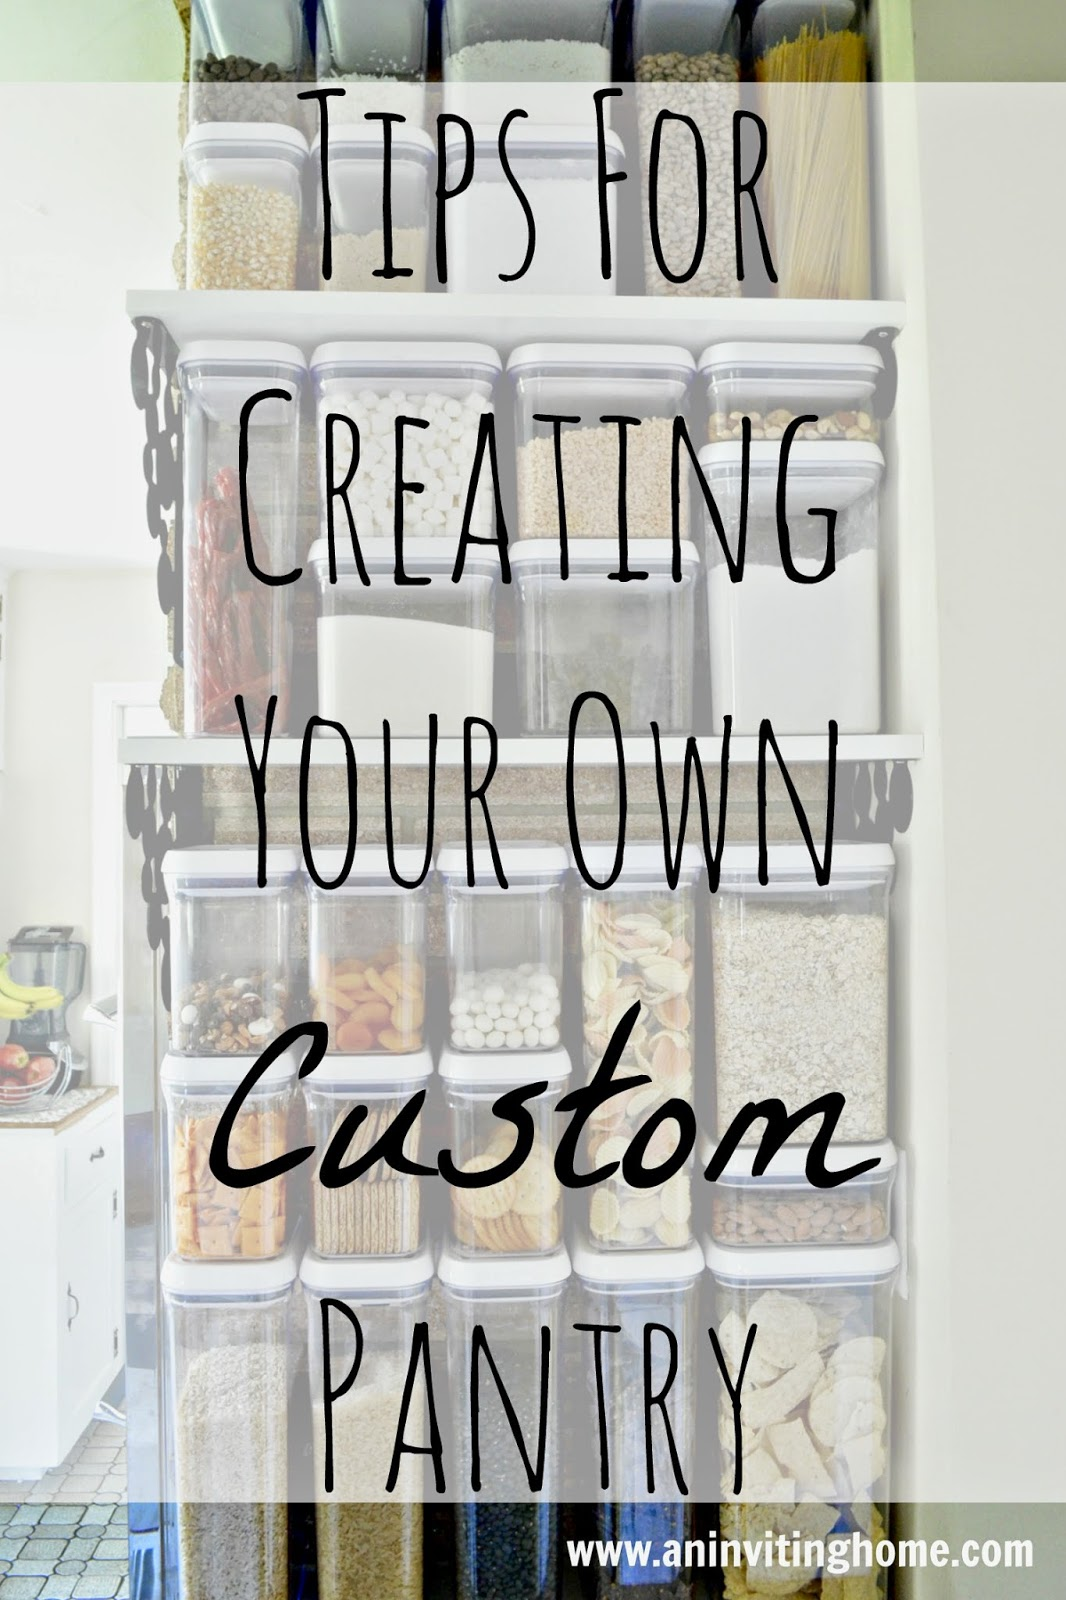 Tips For Creating Your Own Custom Pantry